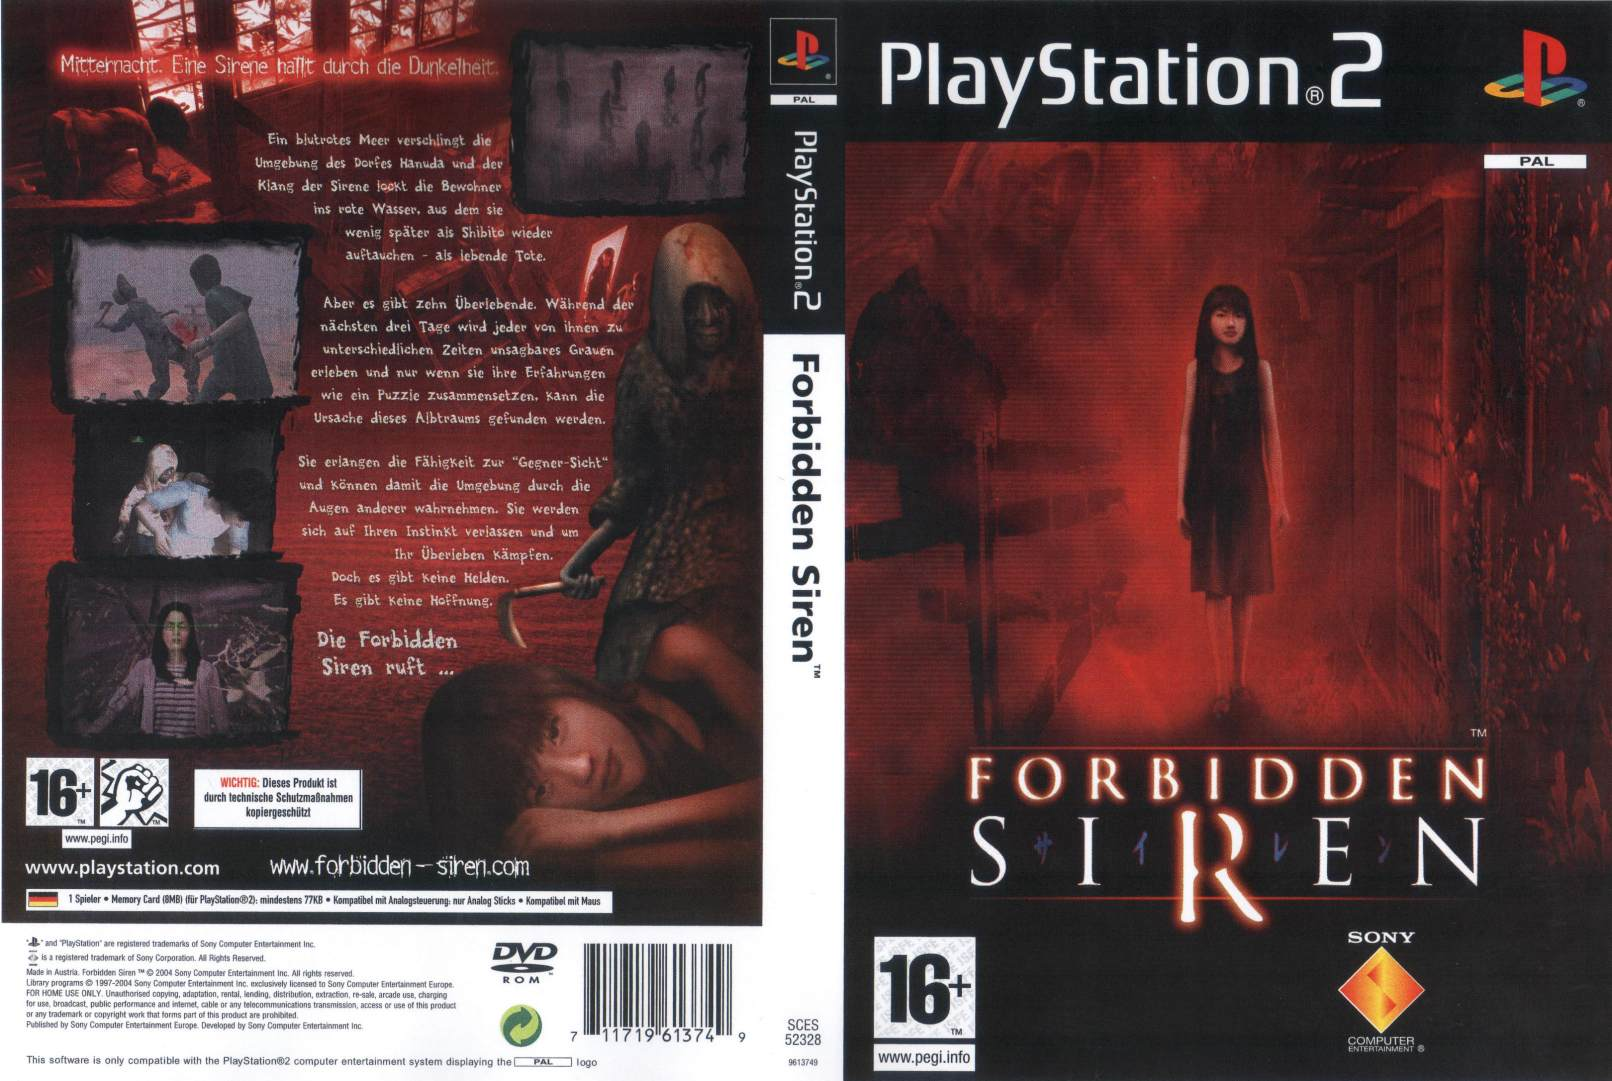 Forbidden Siren D Playstation 2 Covers Cover Century Over